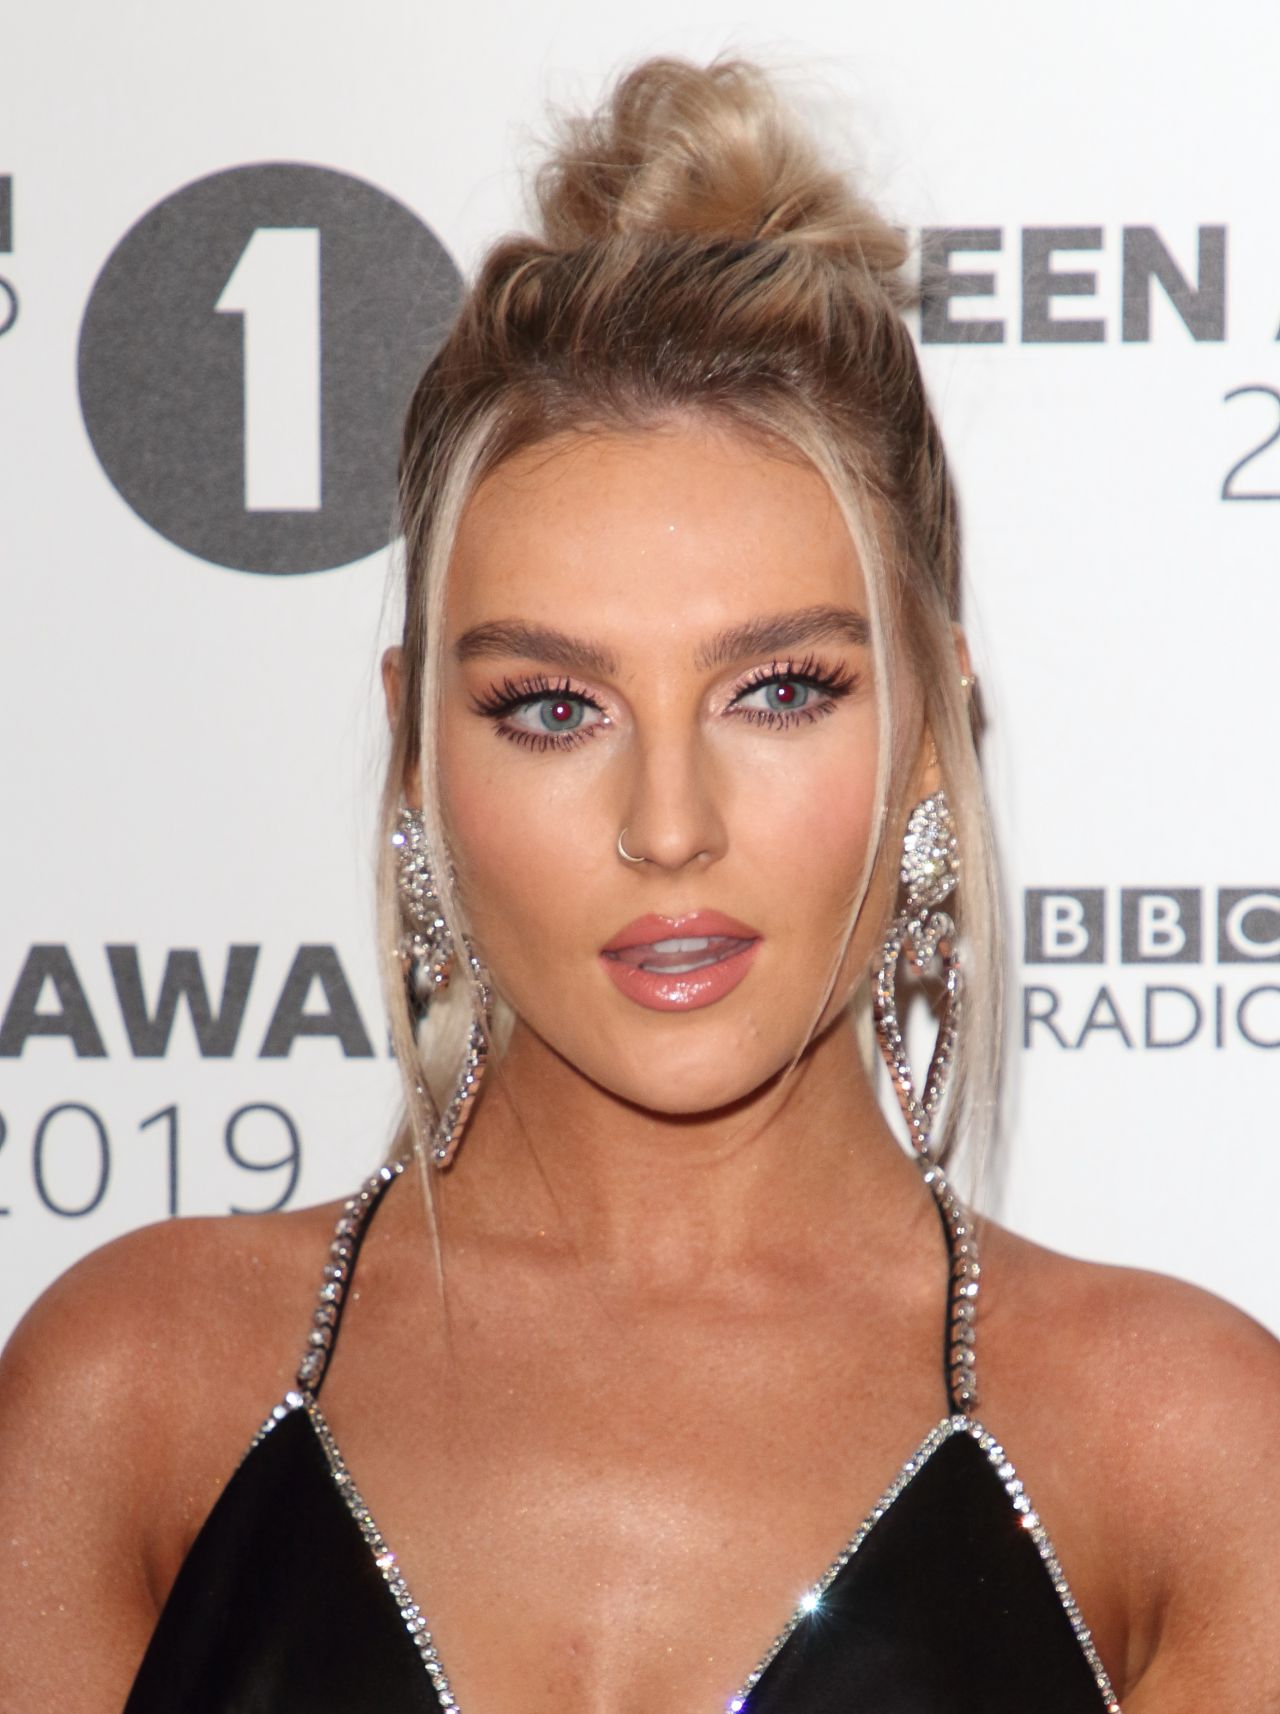 How tall is Perrie Edwards?